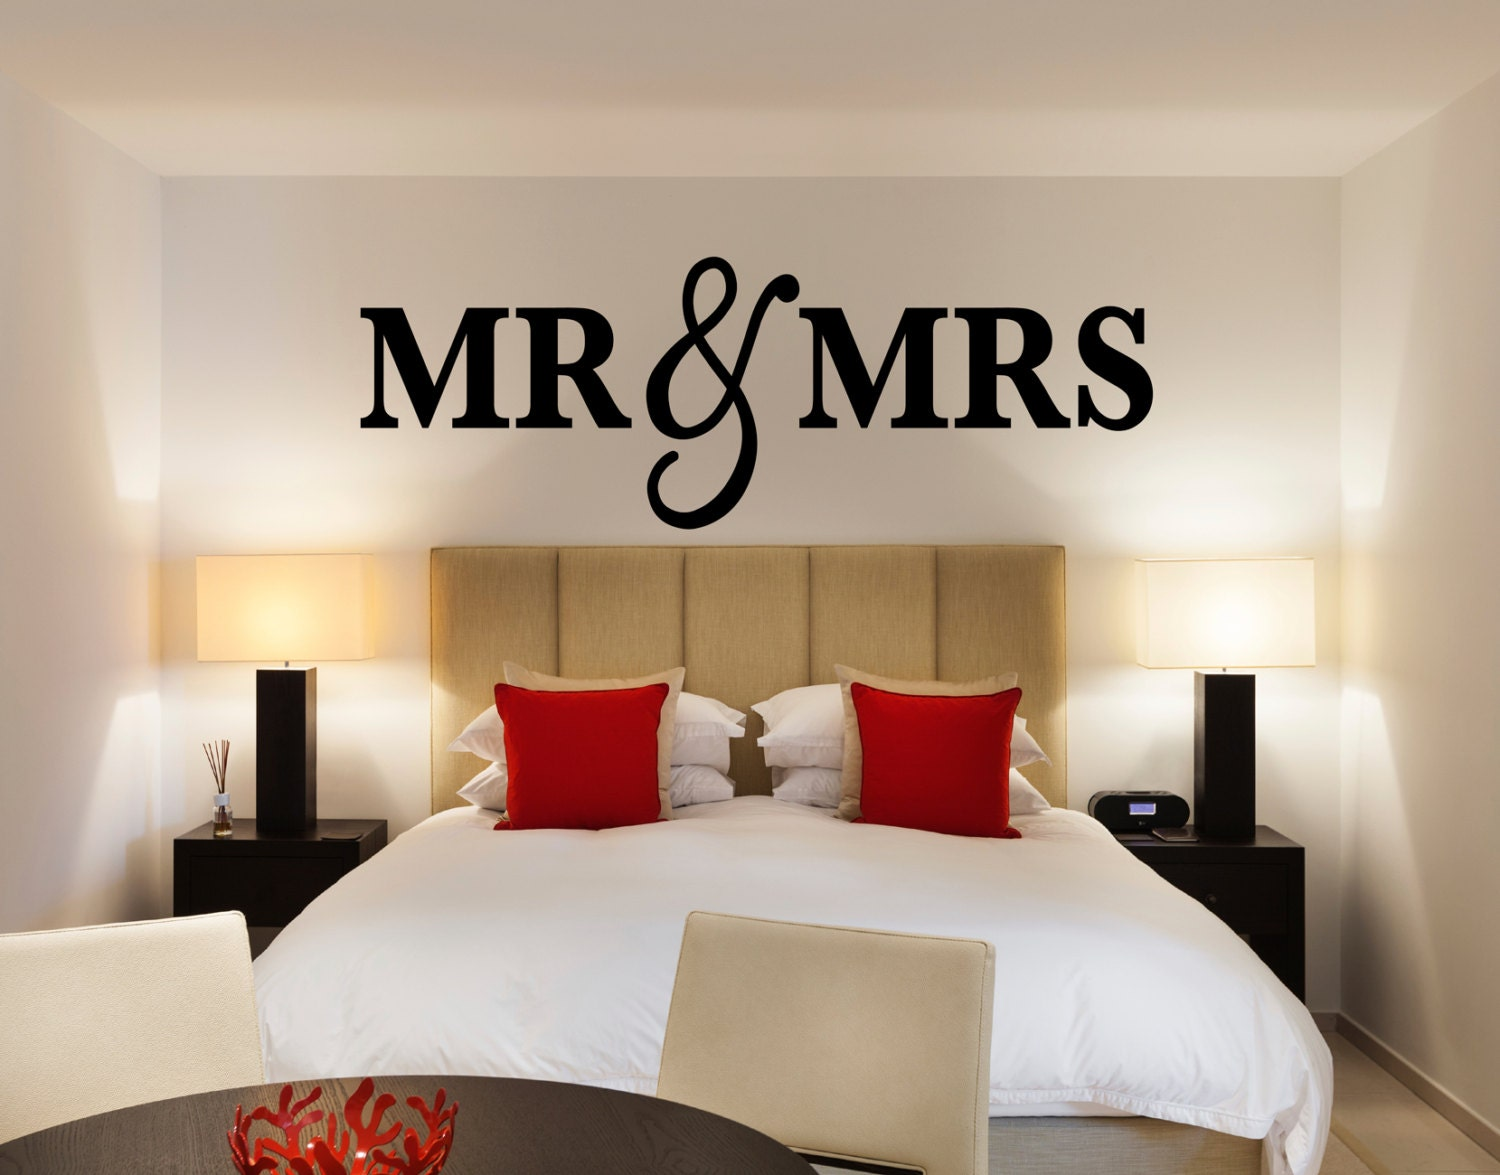 Mr mrs wall sign for bedroom decor mr and mrs sign for for Home decor bedroom